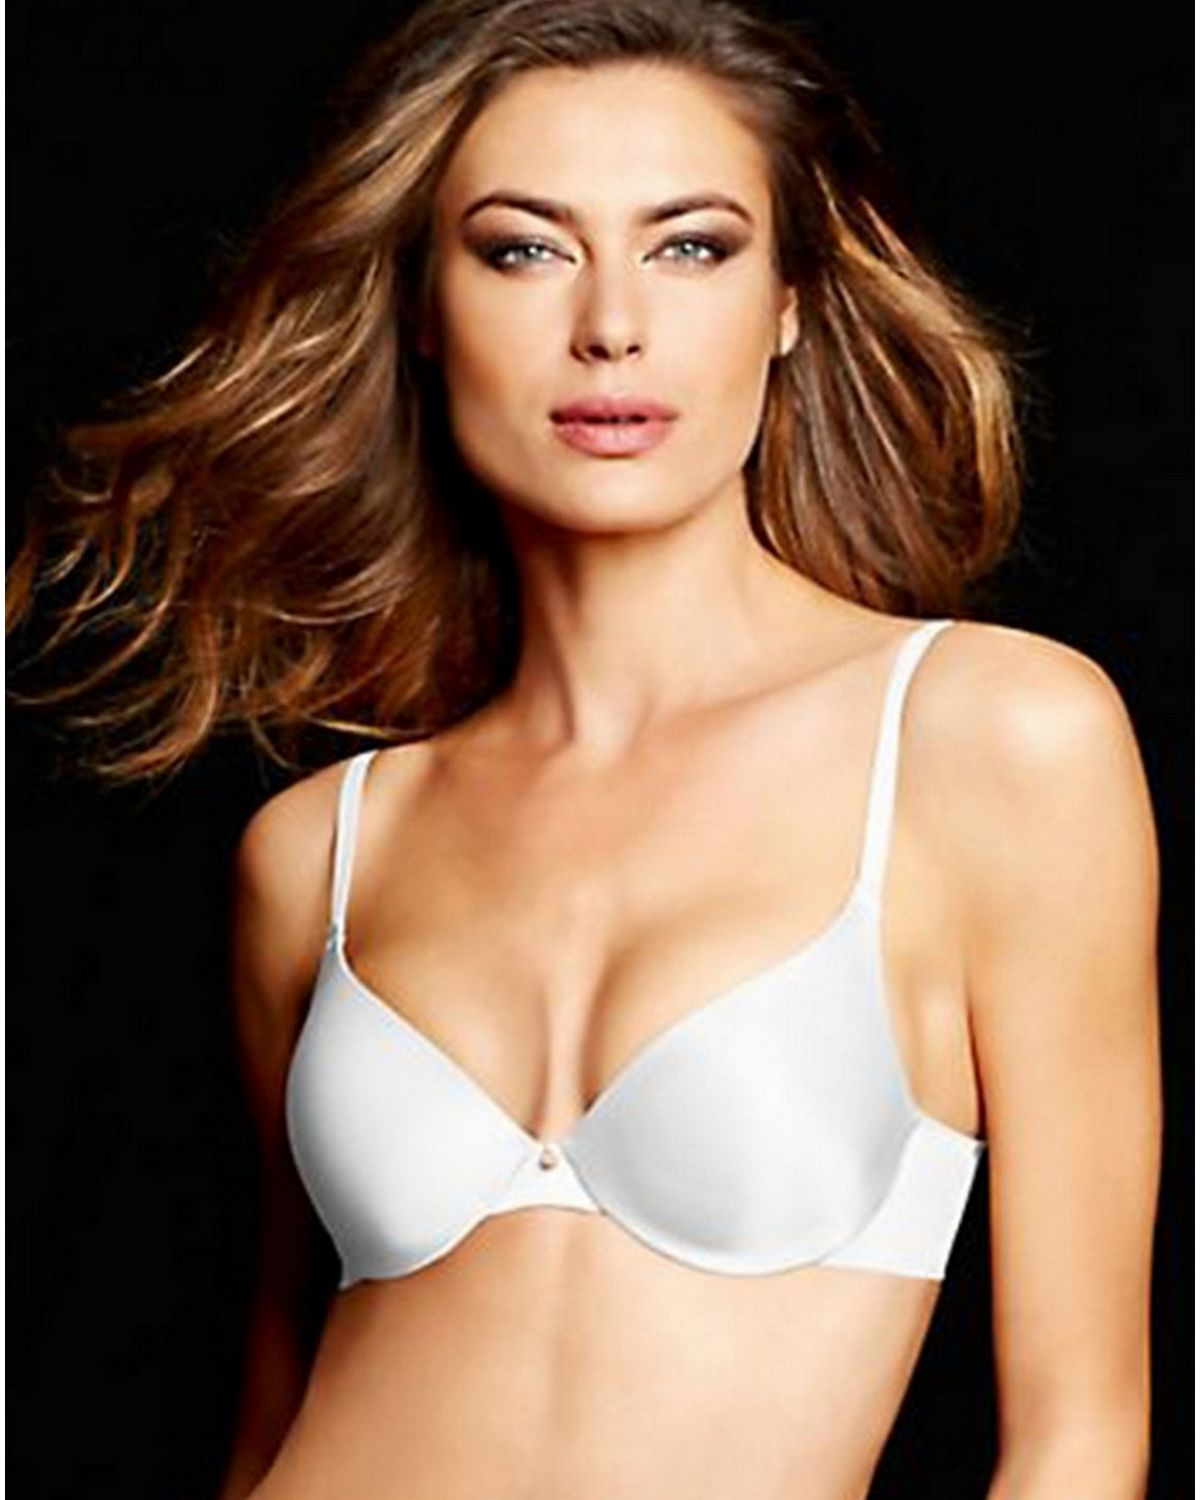 Maidenform 09470 Smooth Comfort Demi Bra - White - 36B 09470